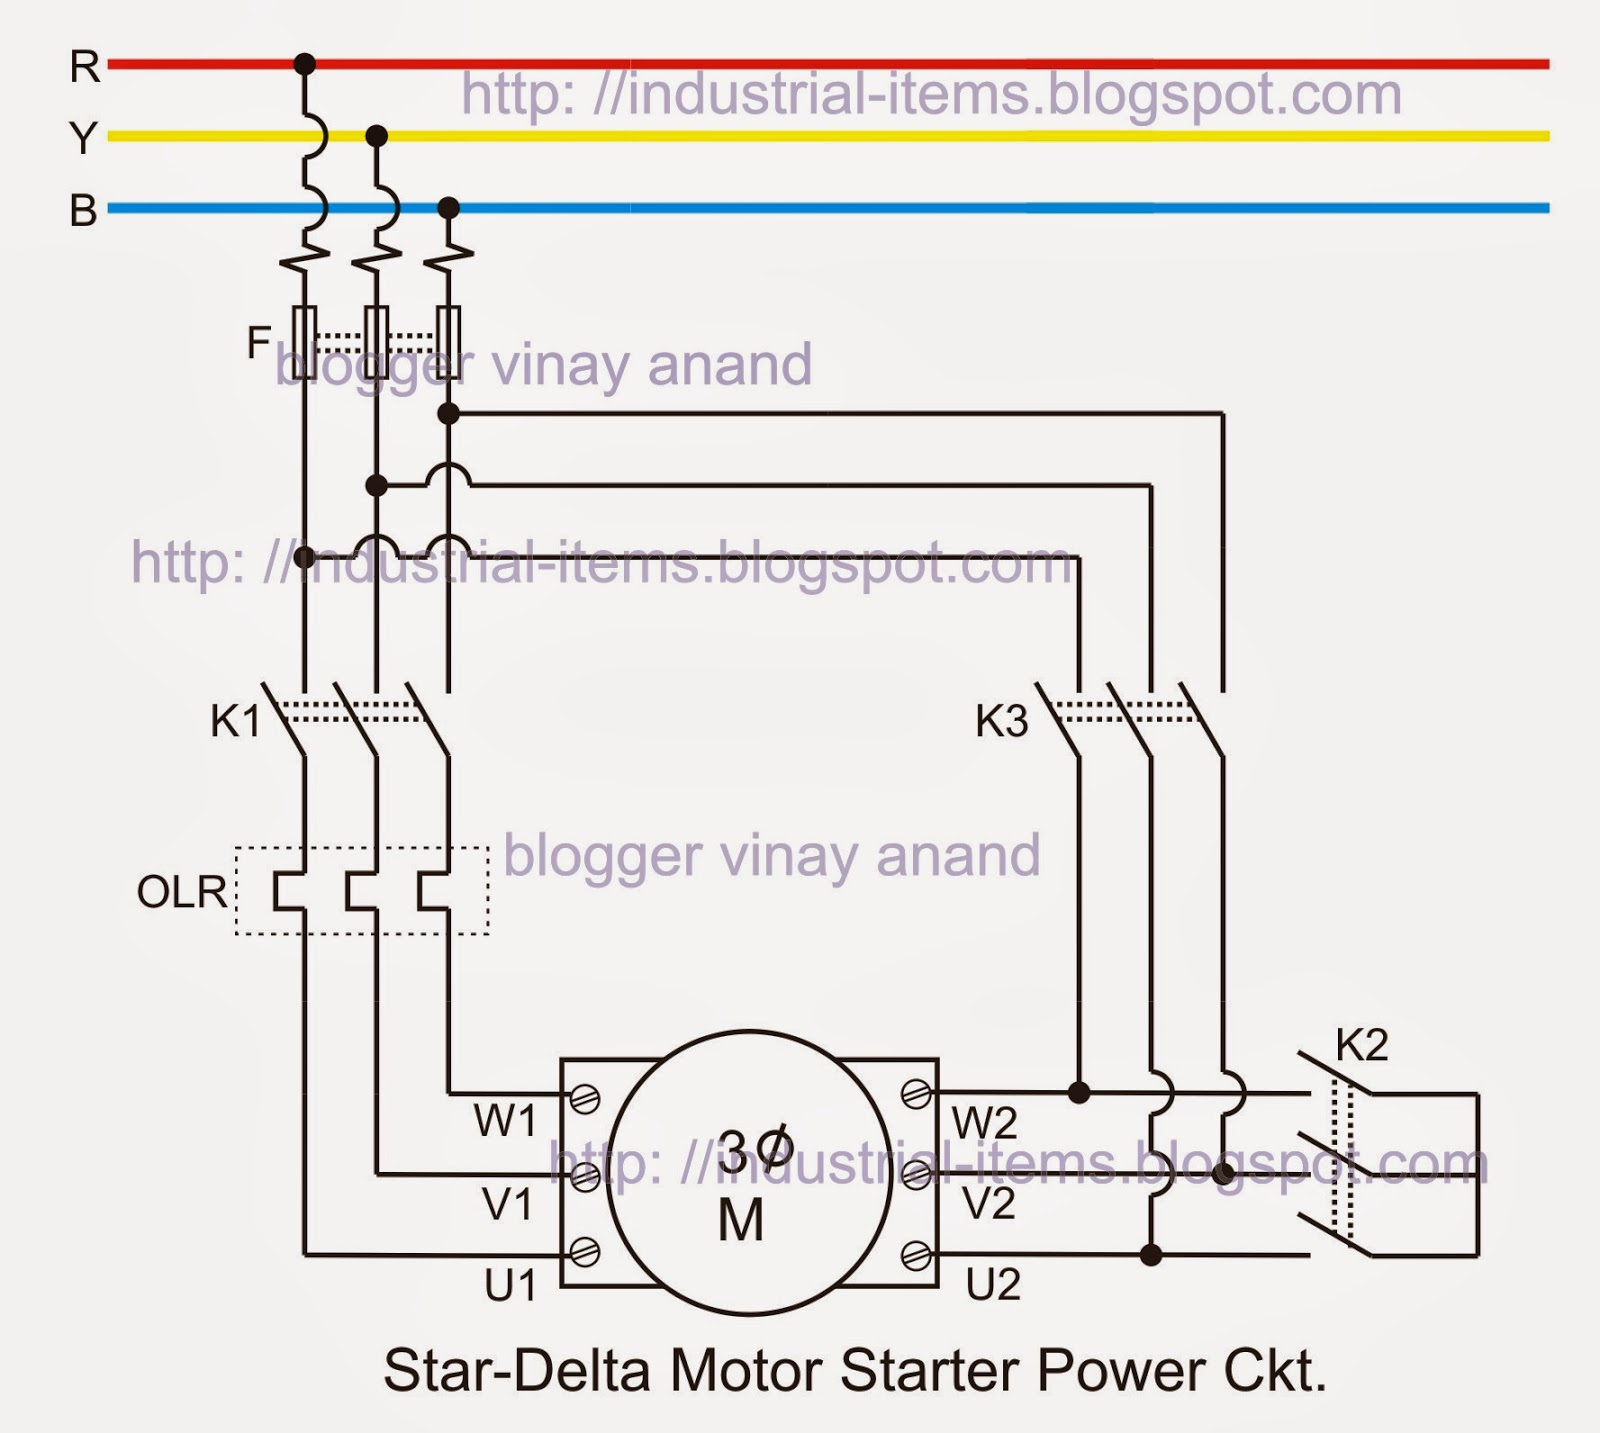 Star+Delta+power+Ckt. gk, current affairs, tutorials & articles star delta starter theory star delta wiring diagram with timer pdf at eliteediting.co